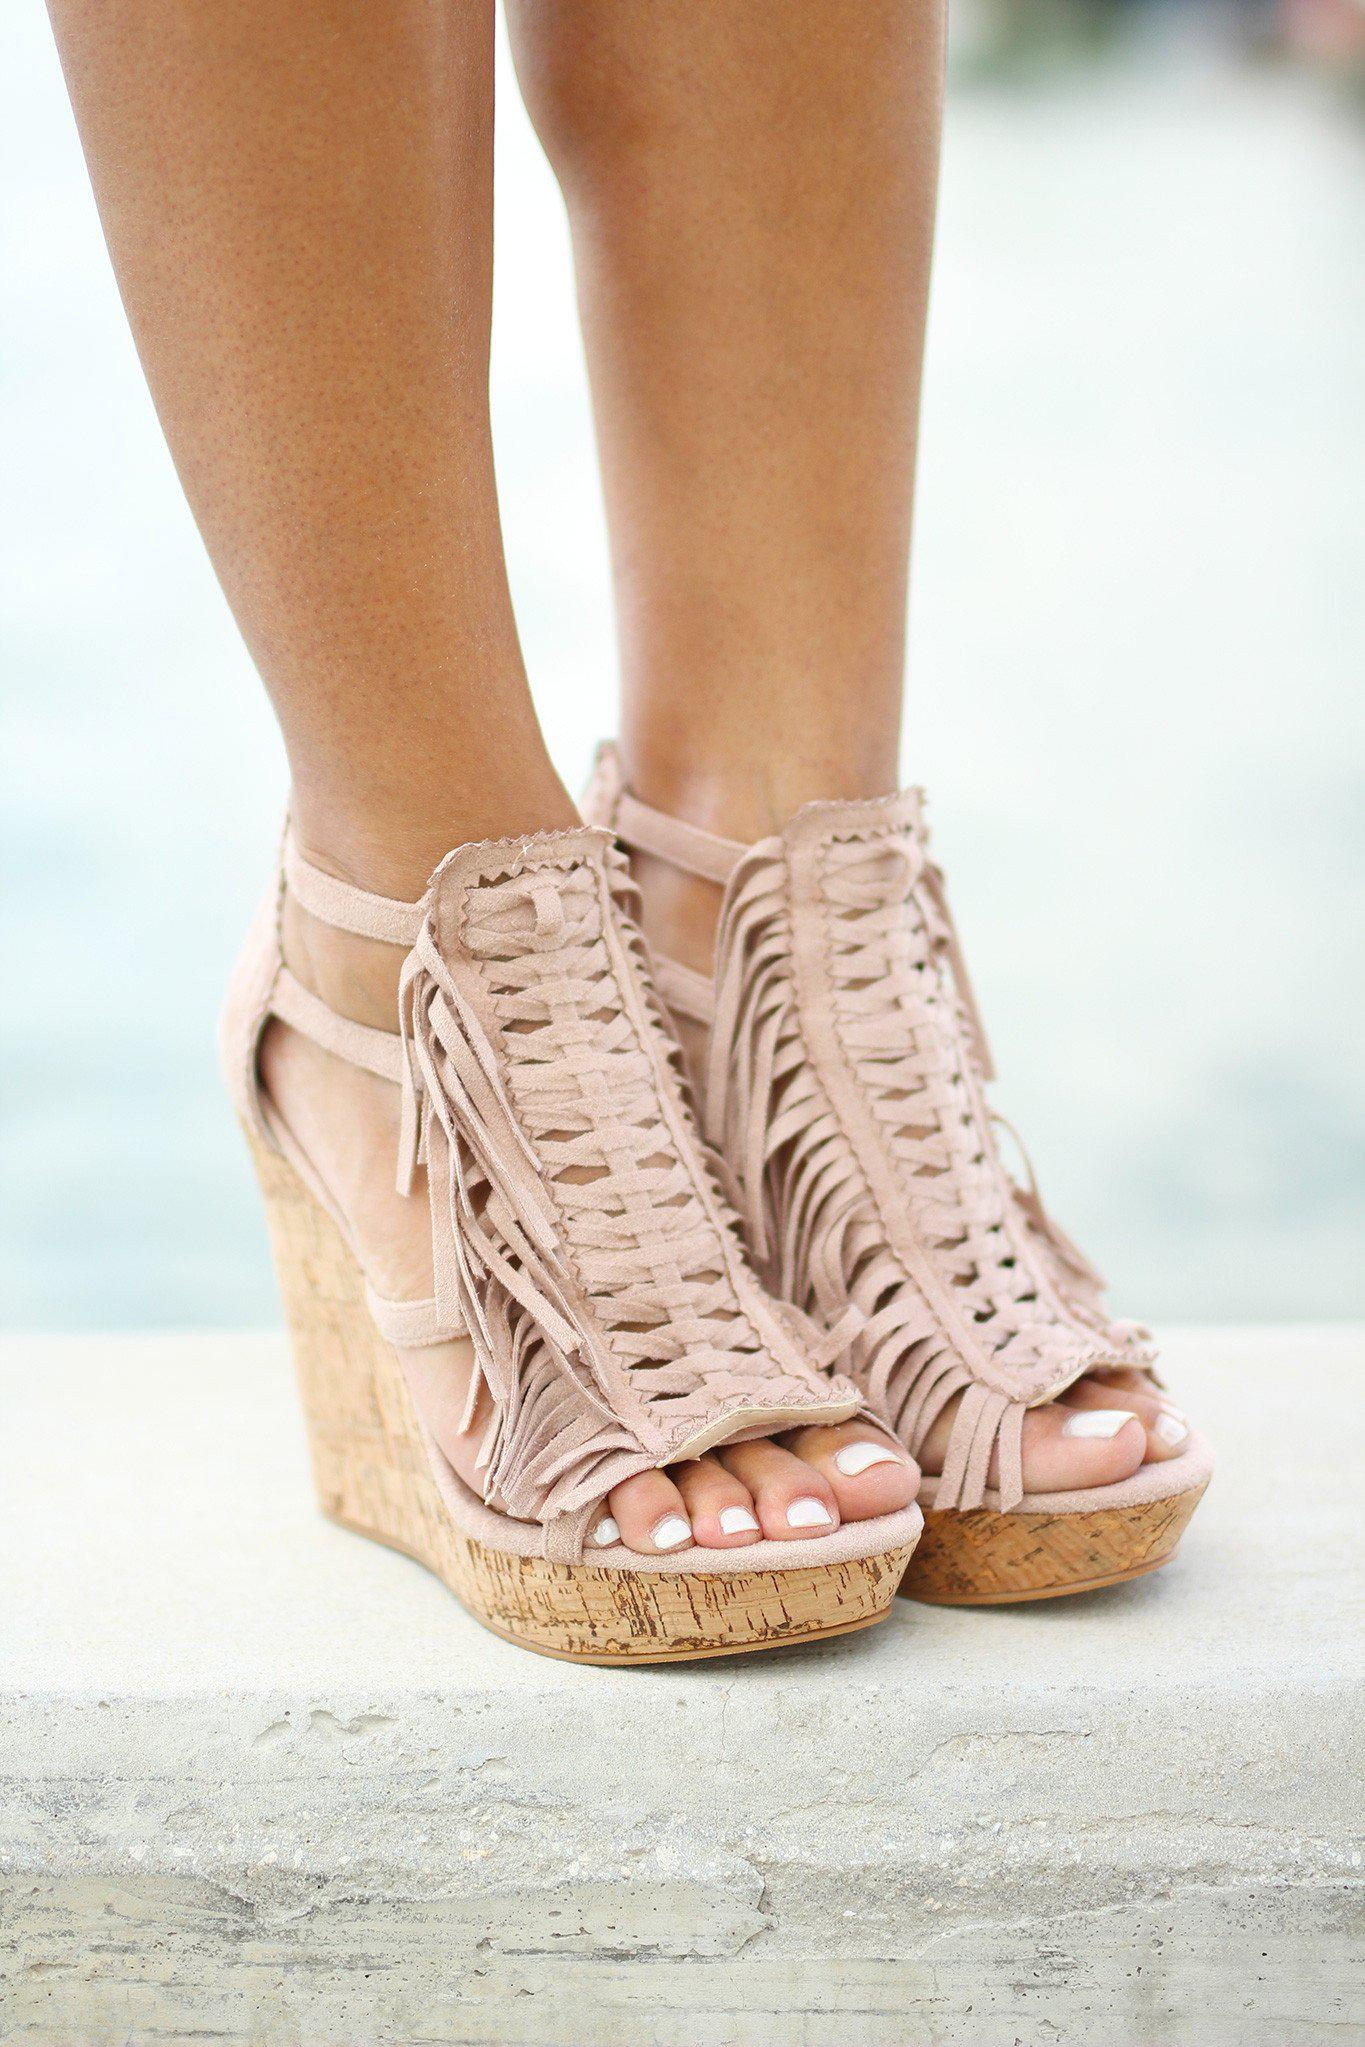 Honey Buns Nude Wedges  Cute Wedges  Open Toed Wedges  Saved By The Dress-3258